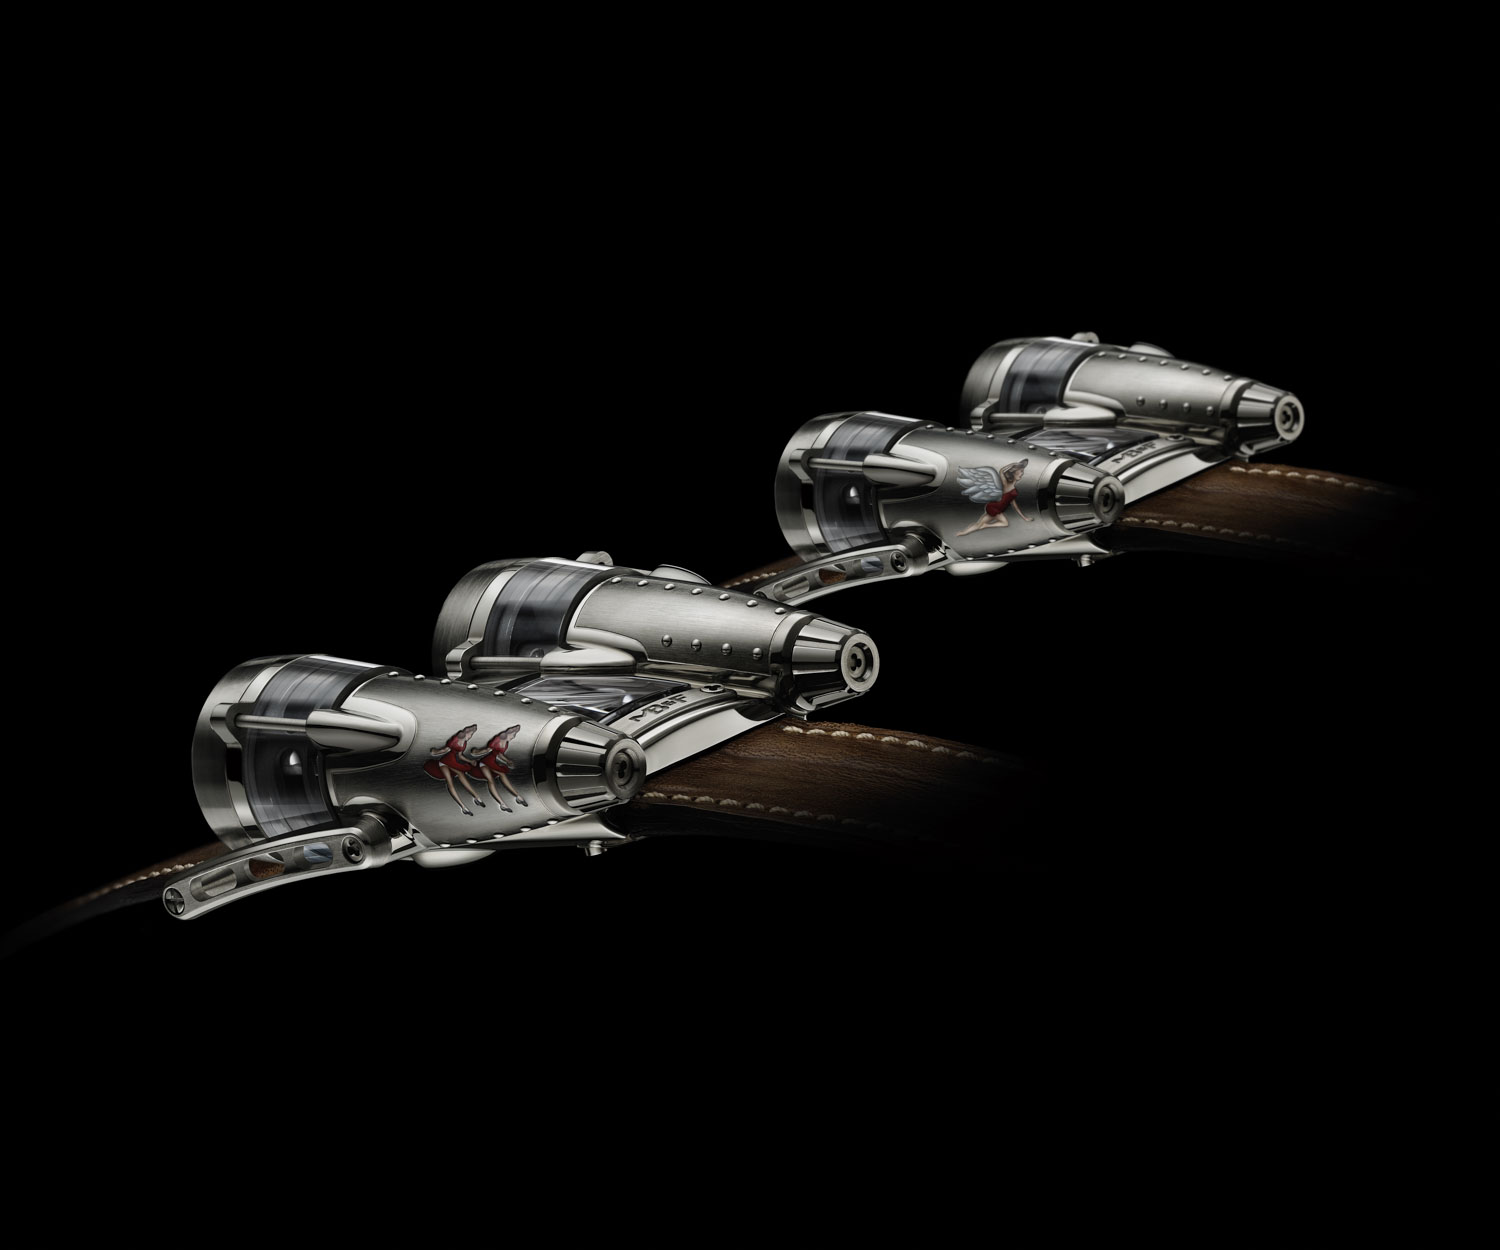 The MB&F HM4 Razzle Dazzle and Double Trouble launched in 2011